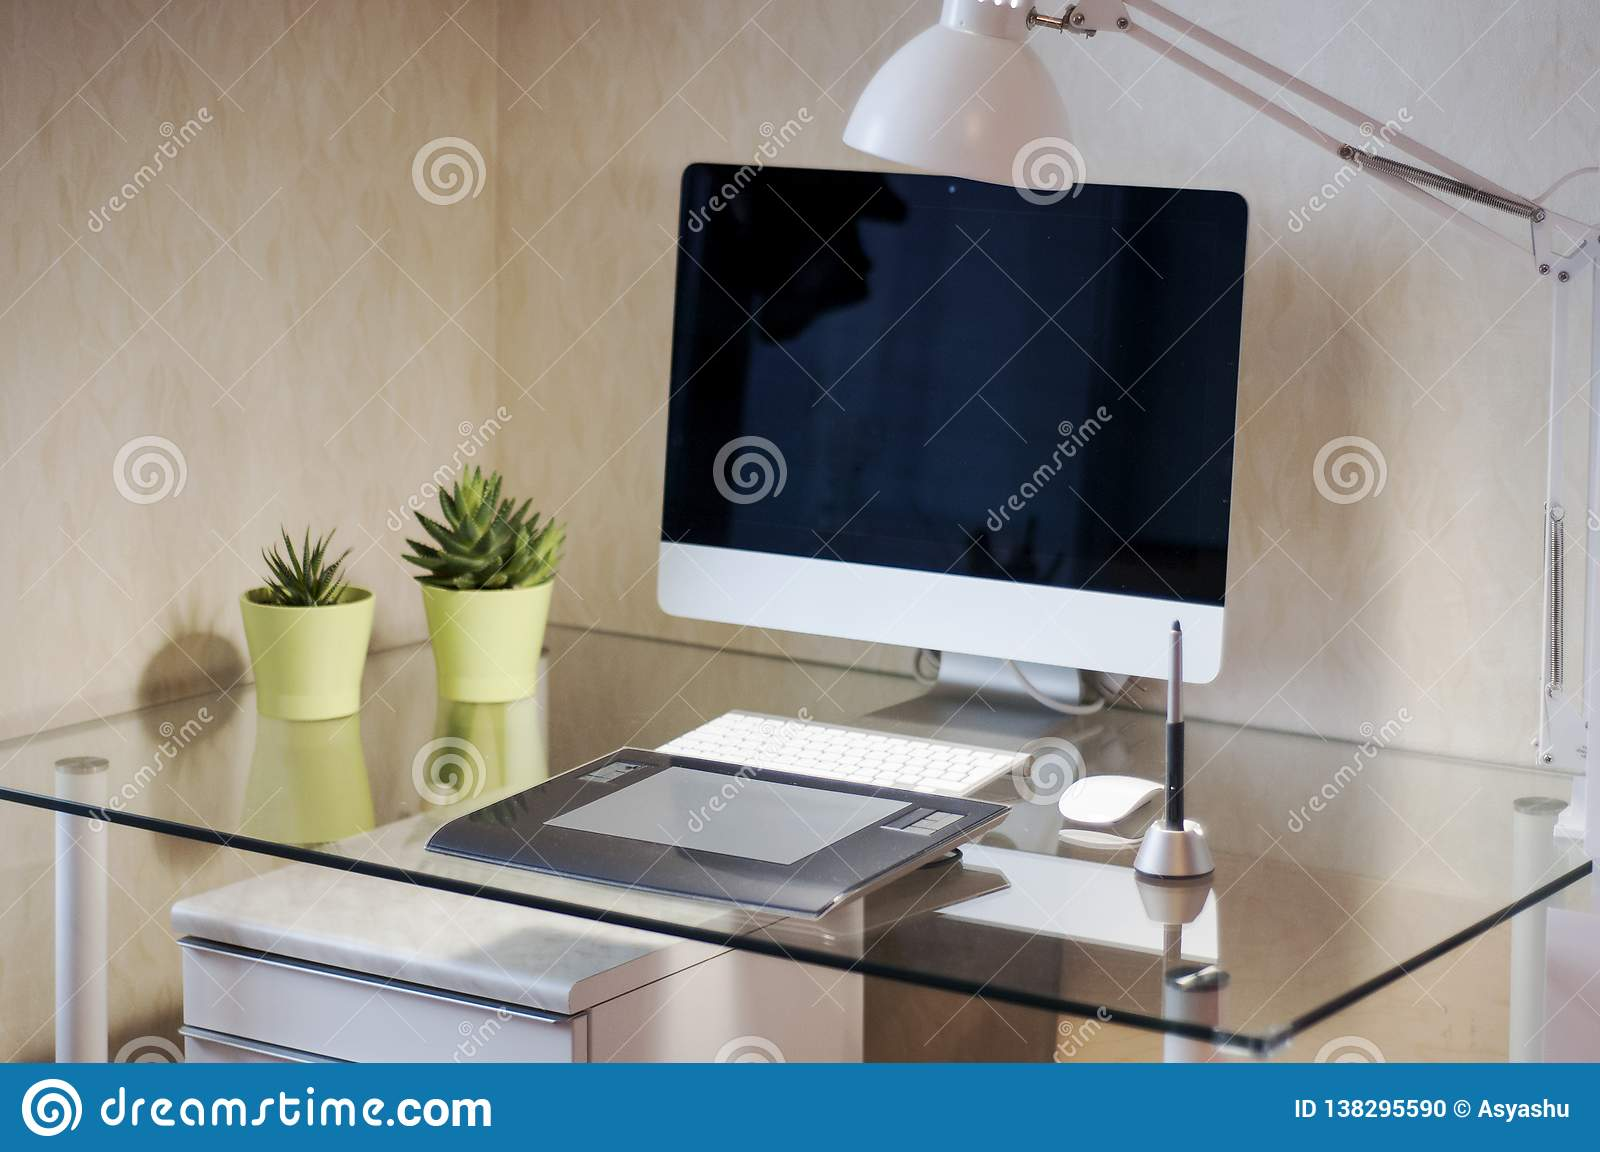 Glass Desk With Computer And Graphic Tablet Modern Desk Workspace Designer S Workspace Stock Photo Image Of Computer Drawing 138295590